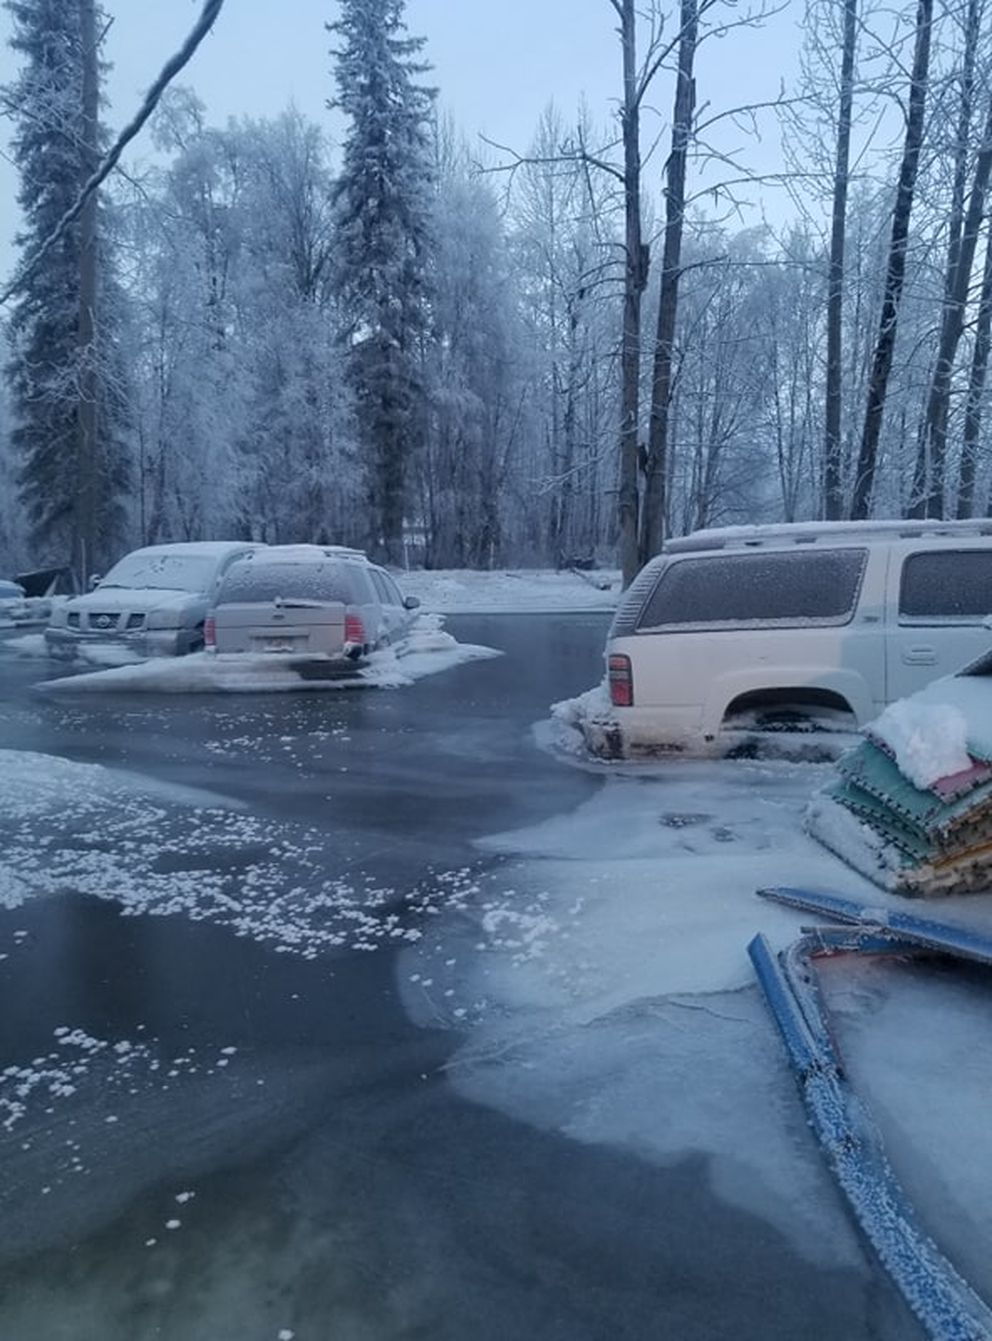 Vehicles were frozen in Kevin Vance's front yard after an ice jam at the Deneki bridge caused flooding in nearby Willow neighborhoods on Dec. 22, 2019. Photo by Kevin Vance.